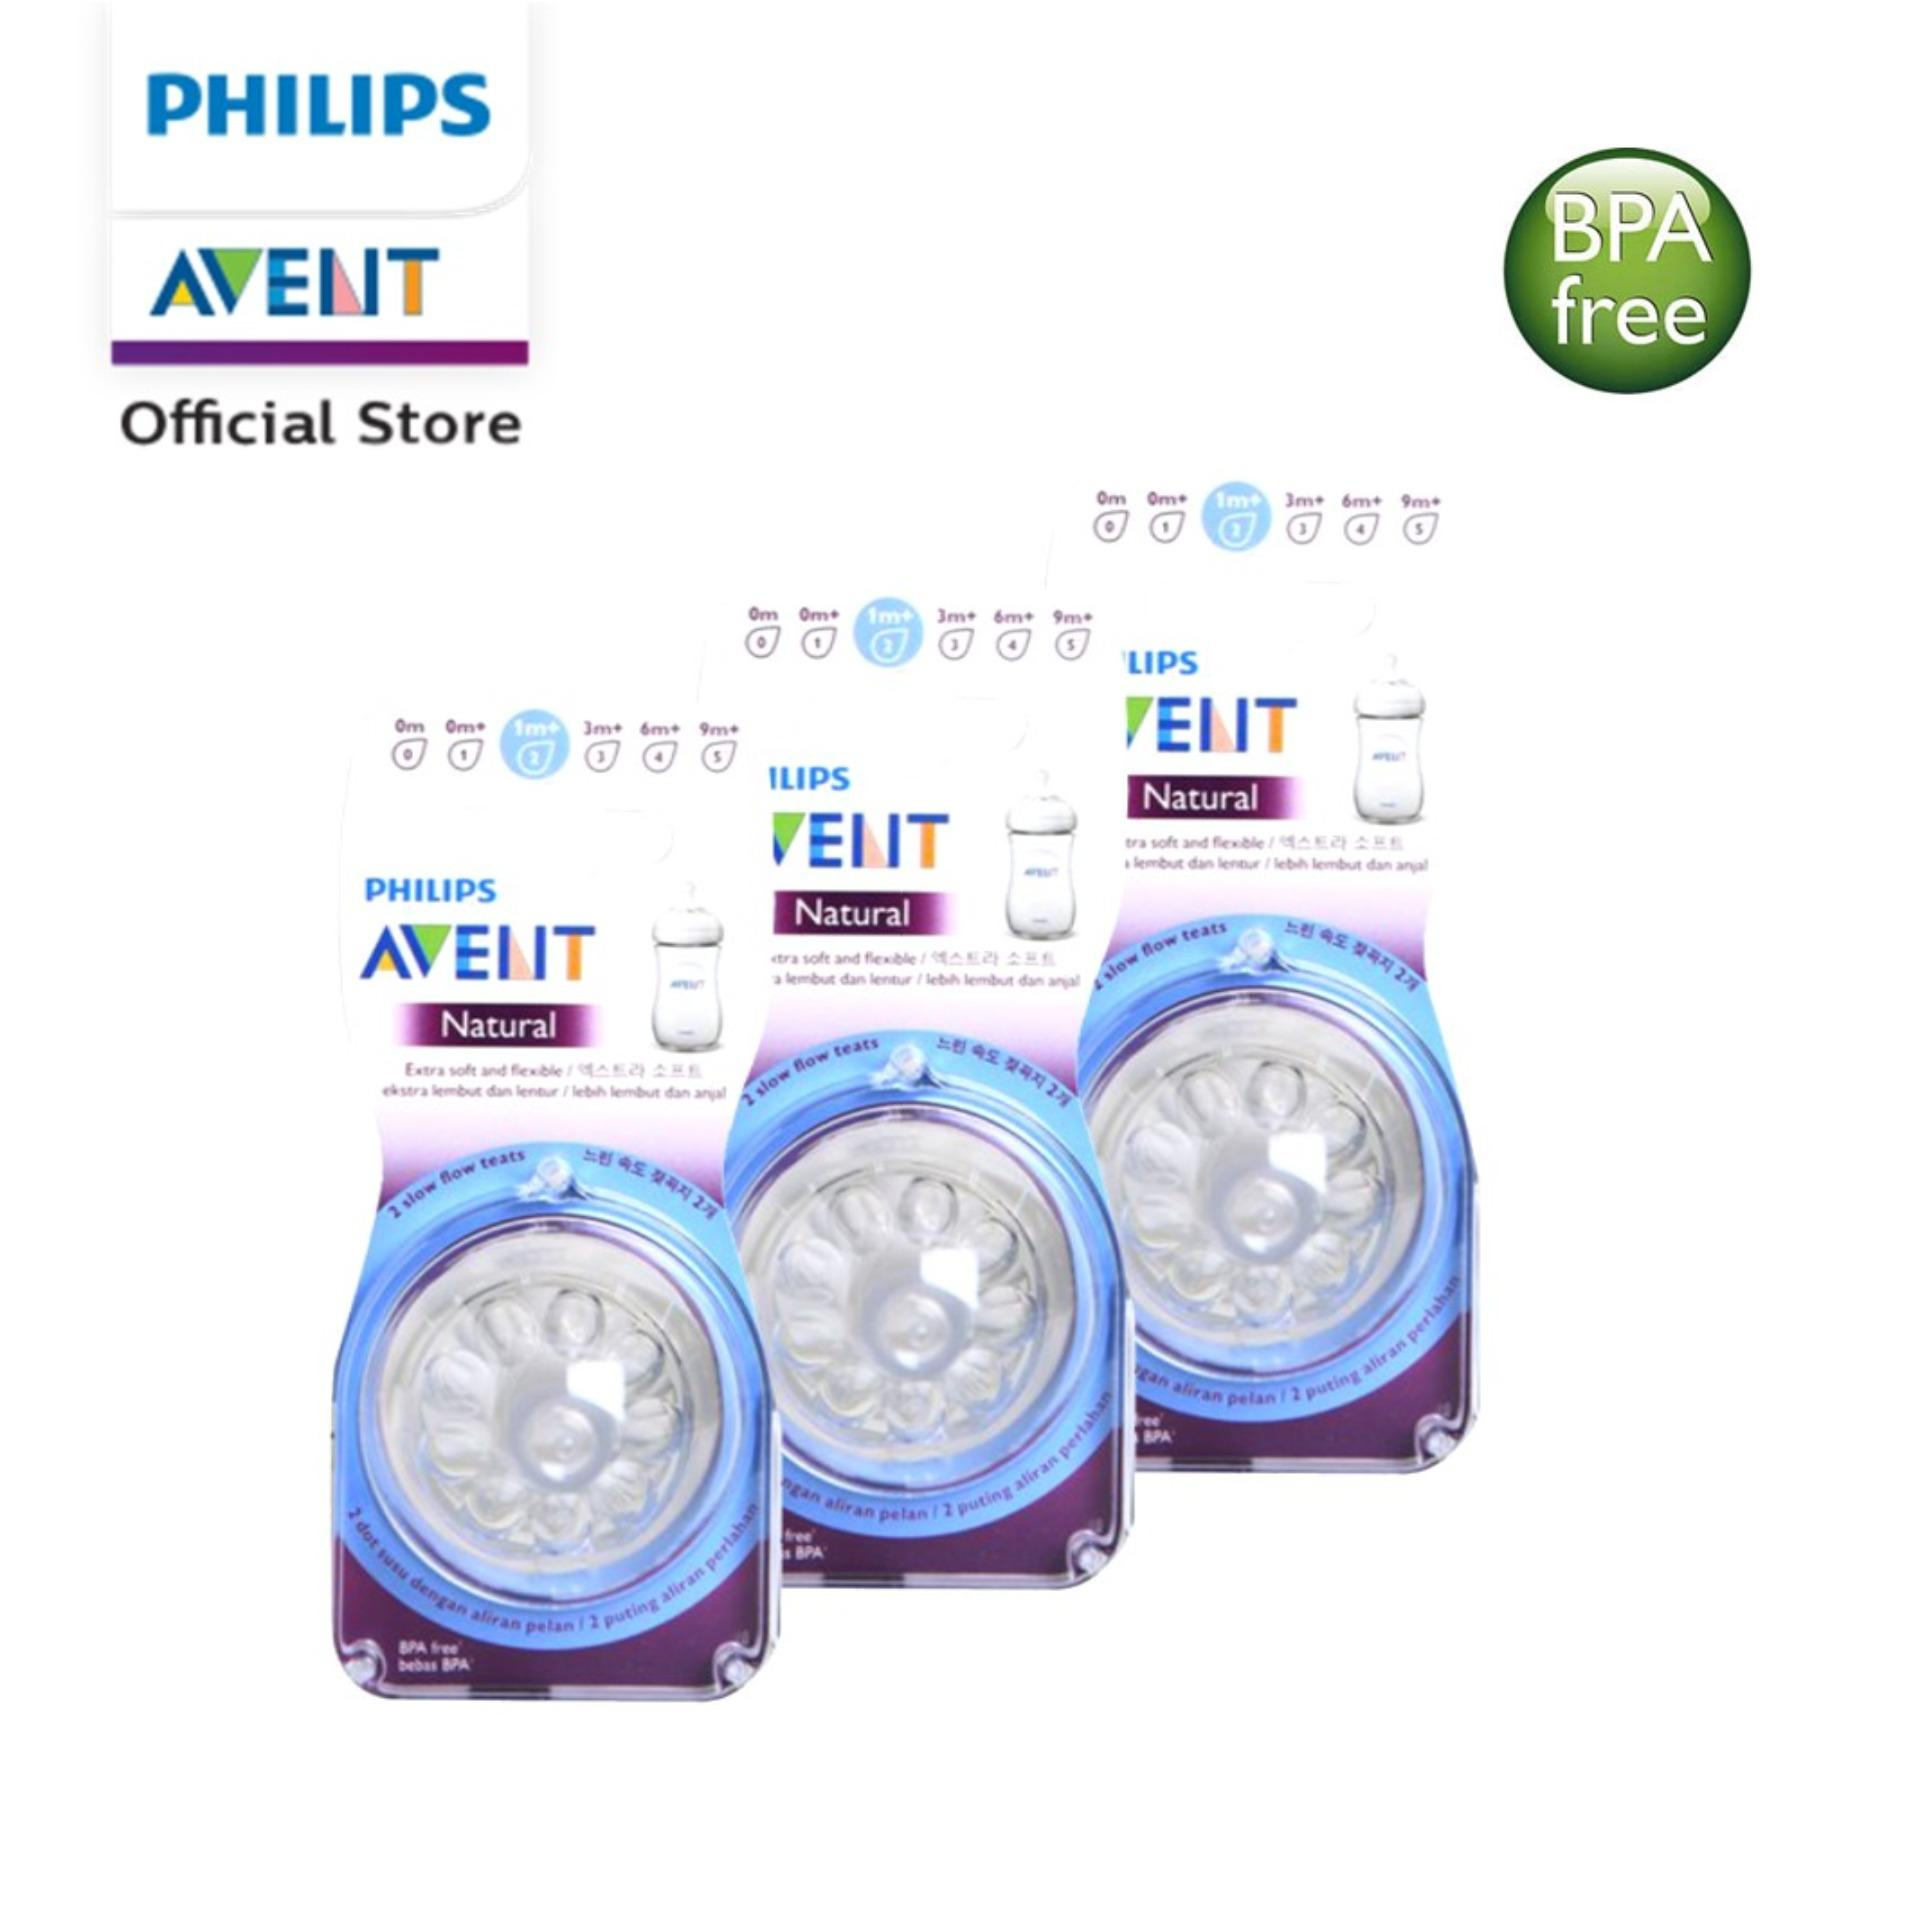 Philips Avent Natural Teat Slow Flow 1m+ 2pcs/Pack x 3